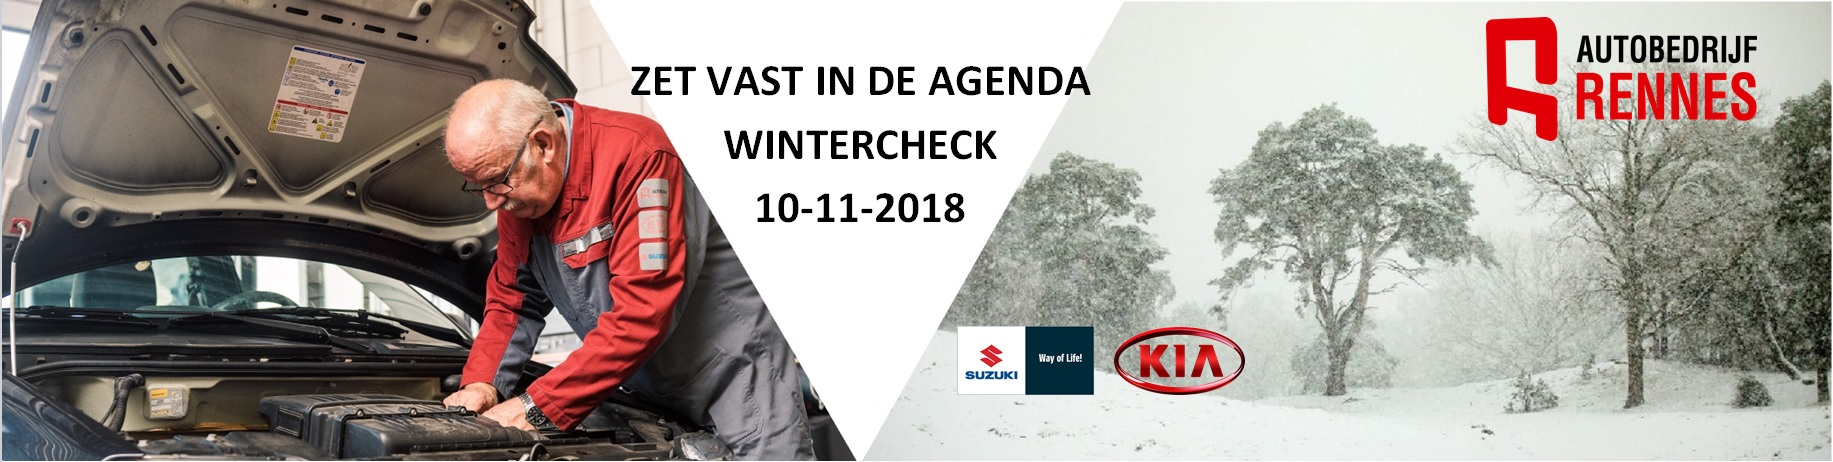 wintercheck-goed